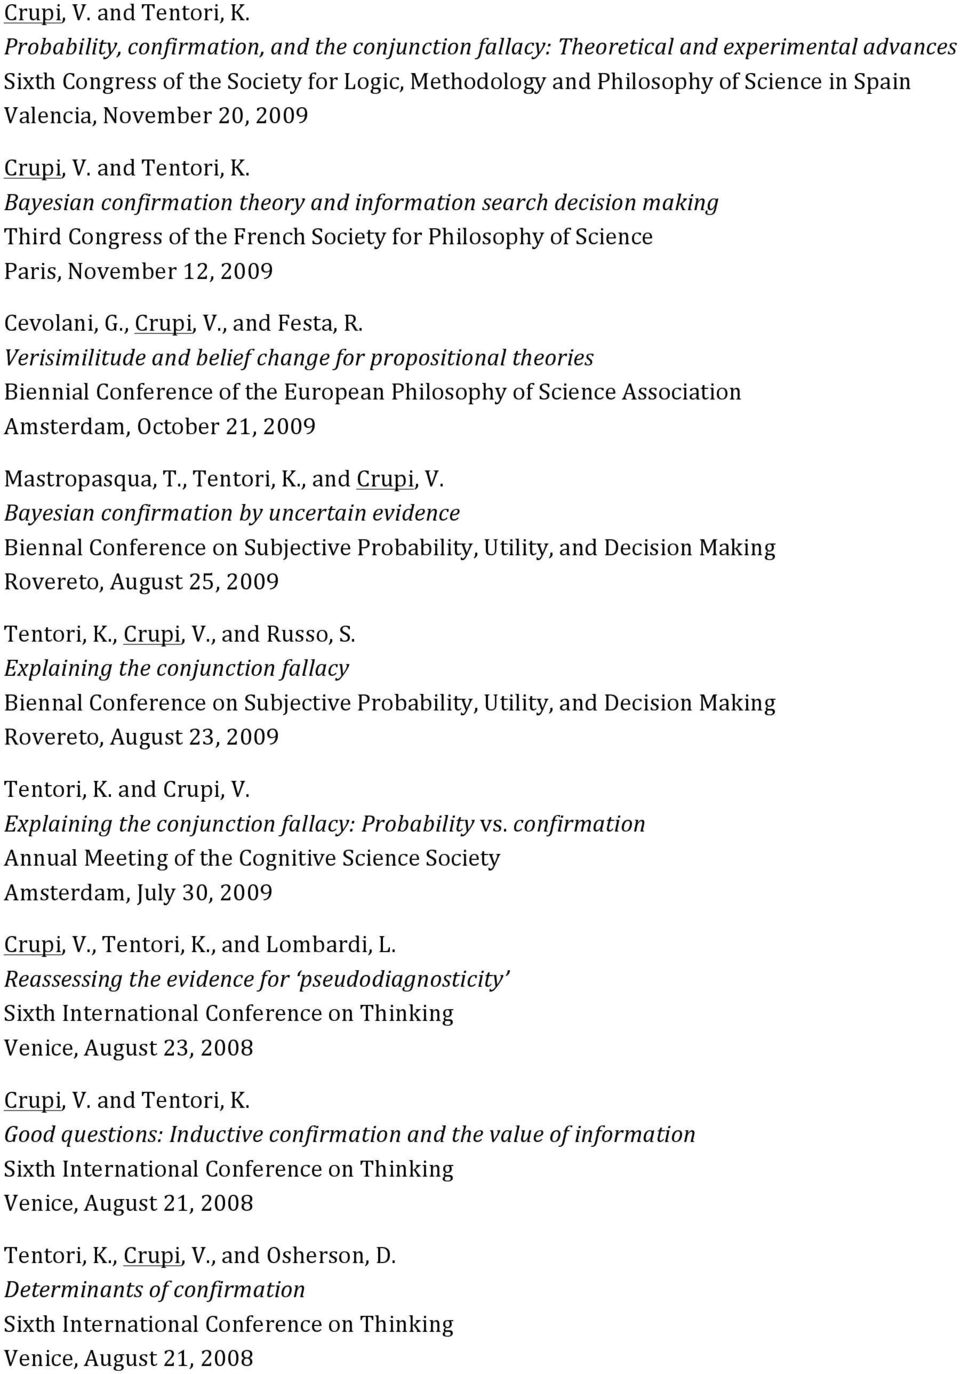 November 20, 2009  Bayesian confirmation theory and information search decision making Third Congress of the French Society for Philosophy of Science Paris, November 12, 2009 Cevolani, G., Crupi, V.